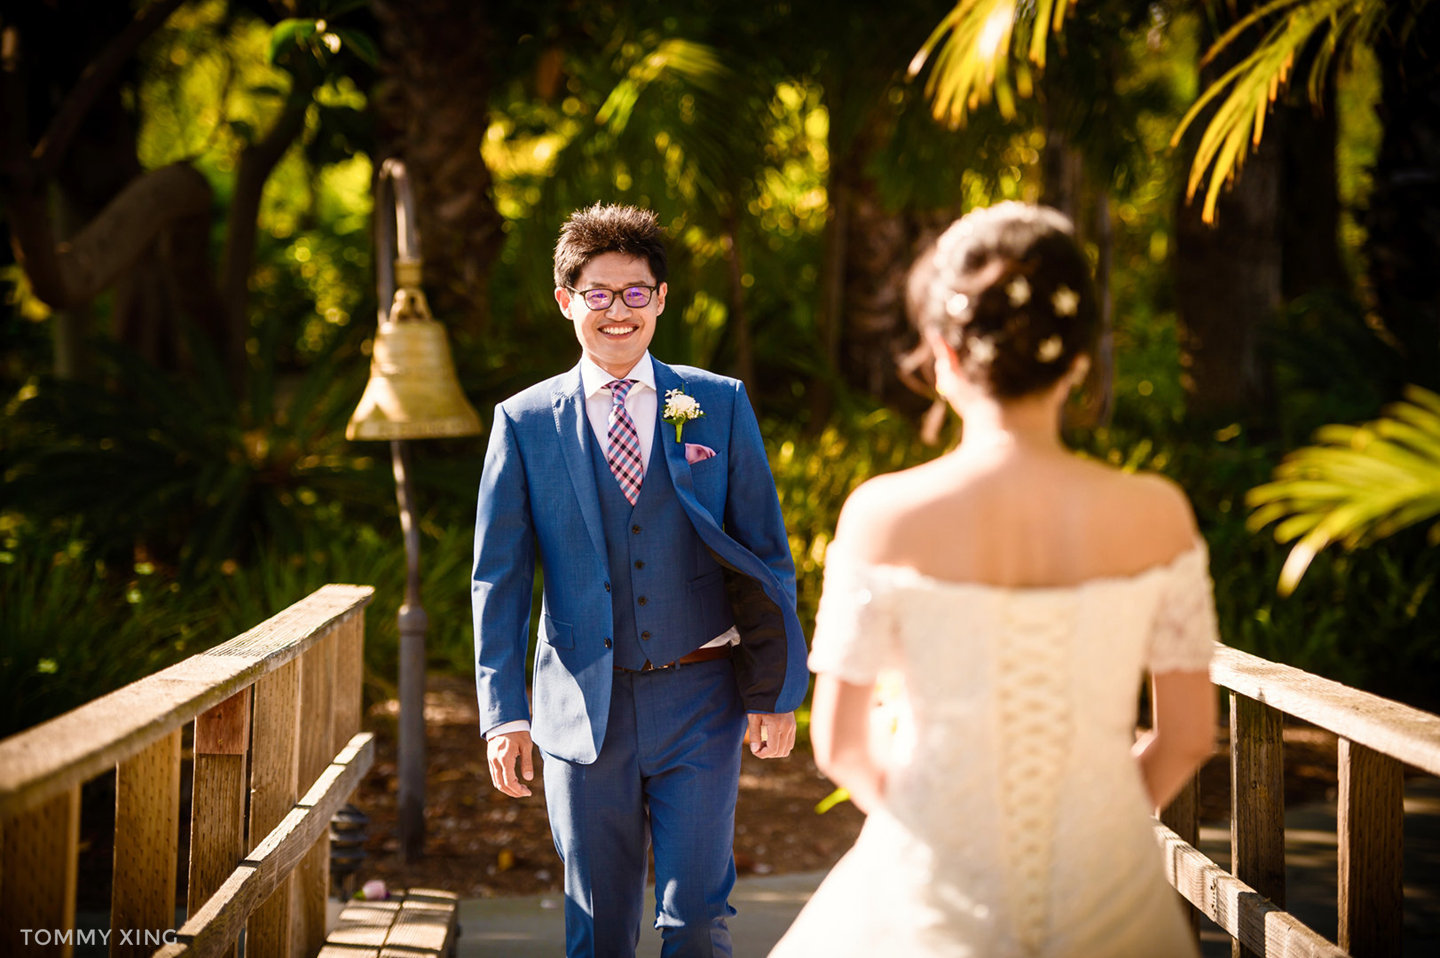 Paradise Point Resort Wedding Xiaolu & Bin San Diego 圣地亚哥婚礼摄影跟拍 Tommy Xing Photography 洛杉矶婚礼婚纱照摄影师 065.jpg